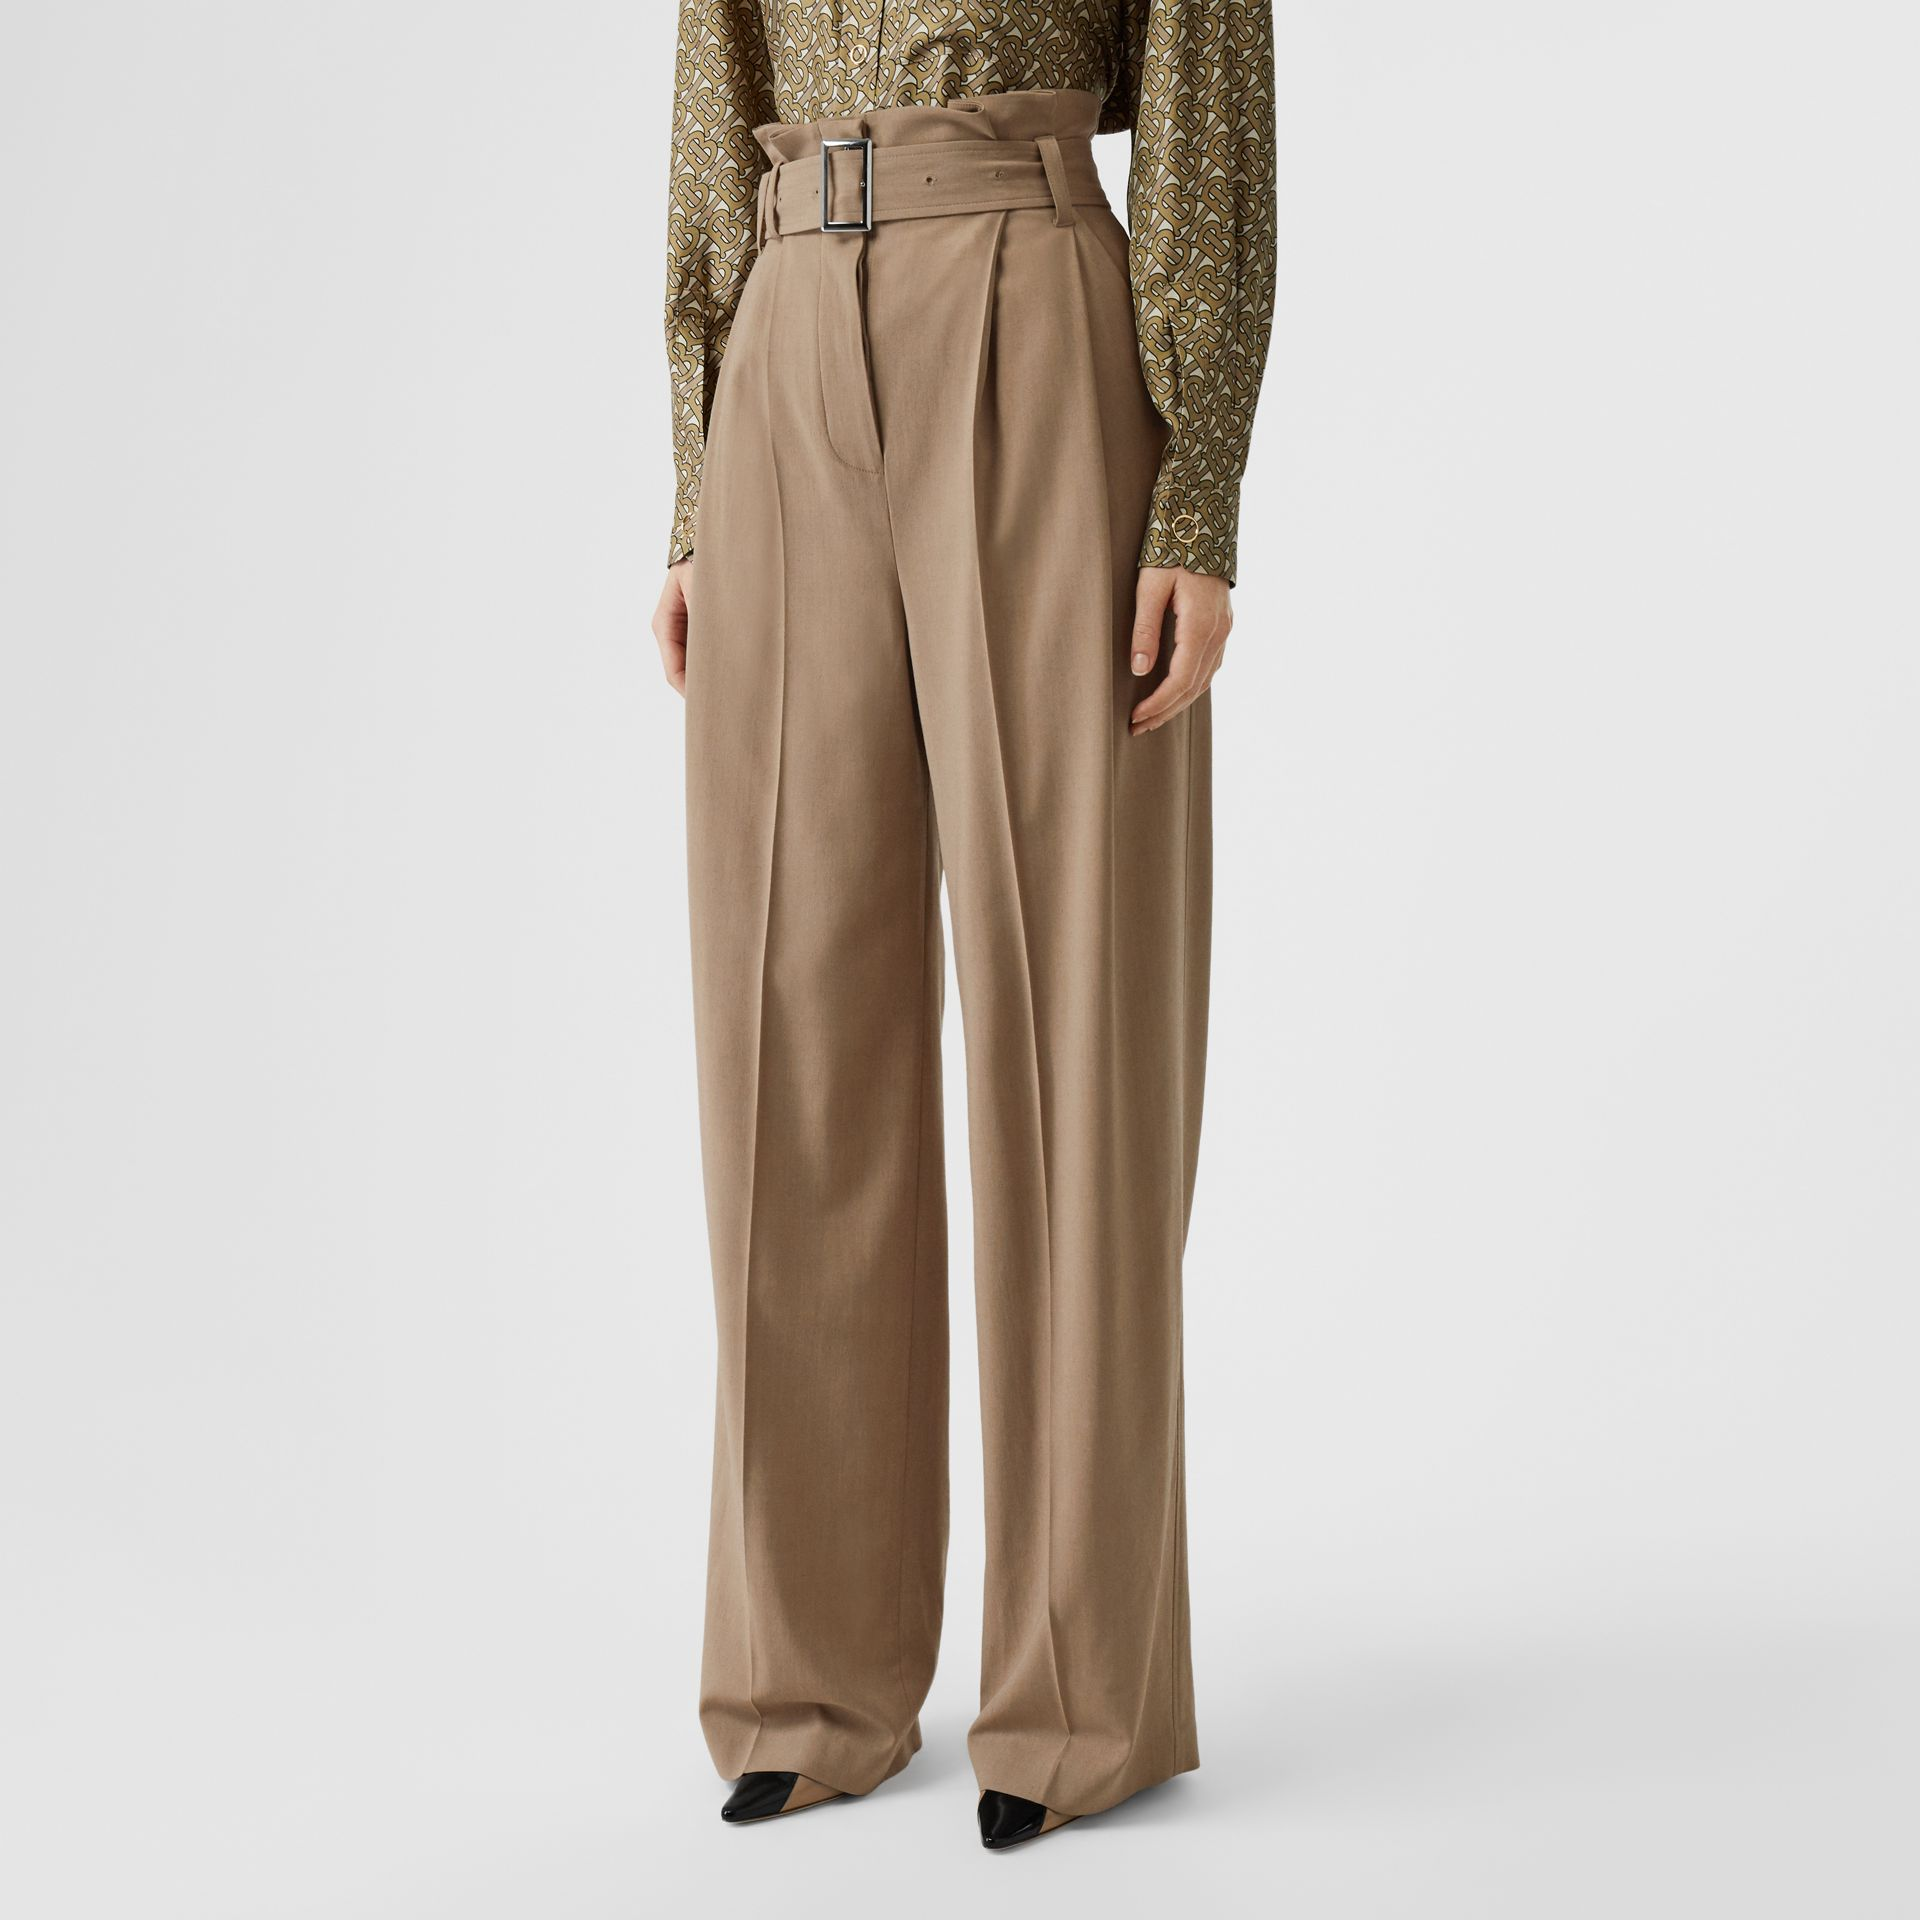 Wool Blend High-waisted Trousers in Warm Taupe - Women | Burberry Australia - gallery image 4